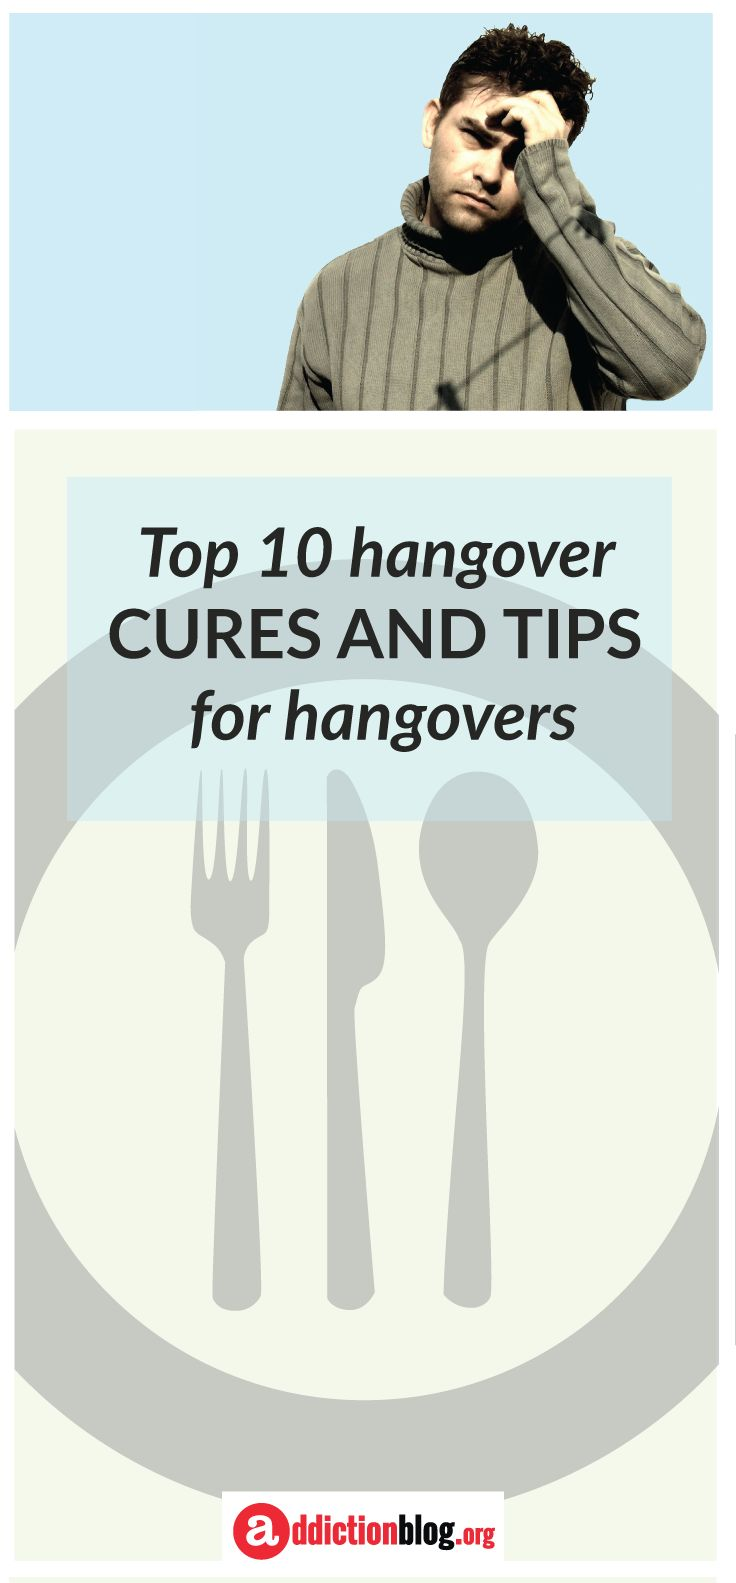 """Hangovers are the body's way to warn us when we drink too much. But, what can you do to make up for the imbalances caused by drinking too much #alcohol and help cure #hangovers? Check out these 10 tips for curing hangovers to learn more. """"a"""" is for addiction 